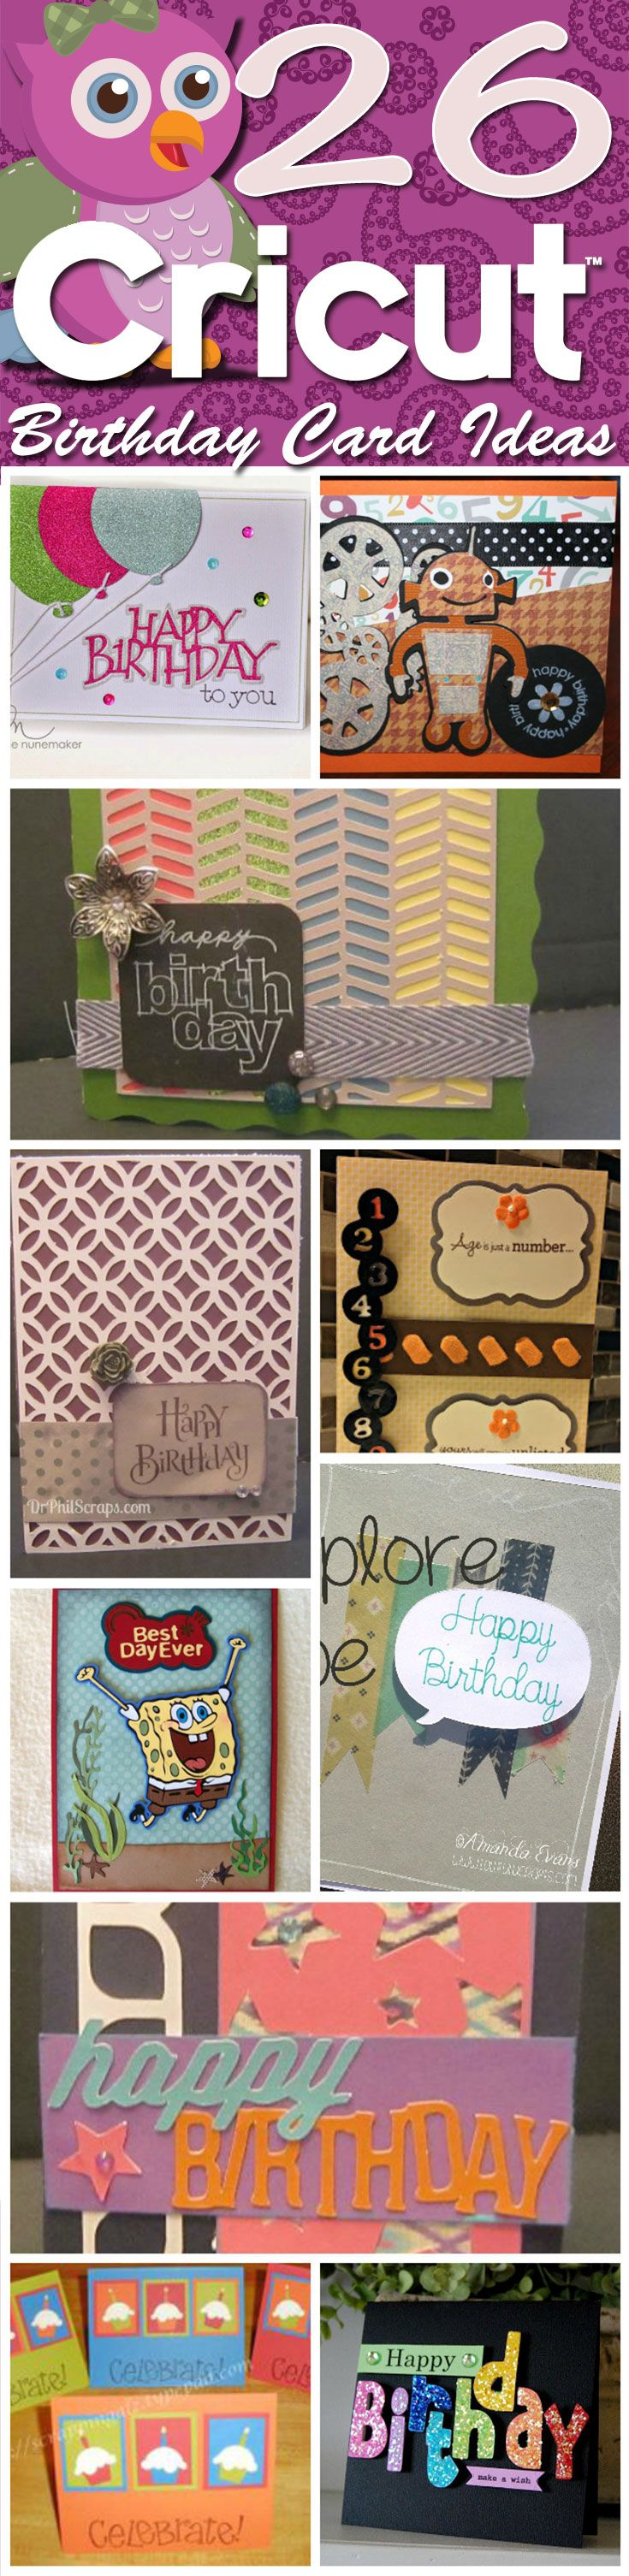 26 Cricut Birthday Card Ideas